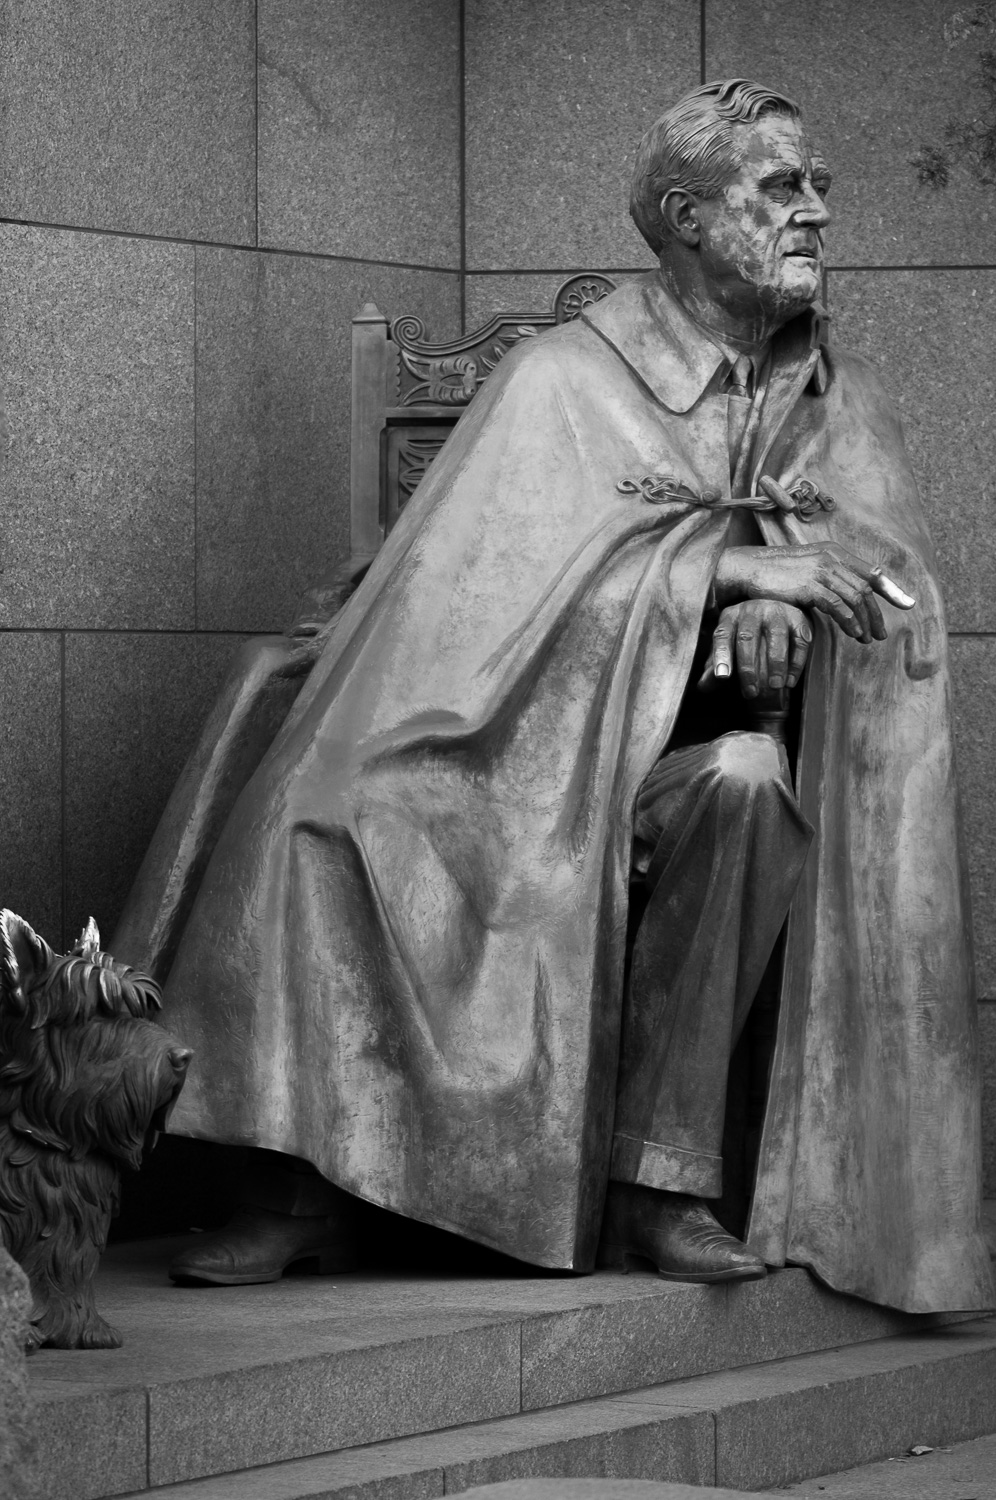 Black and white photo of statue of Franklin Delano Roosevelt and his dog in Franklin Delano Roosevelt Memorial.